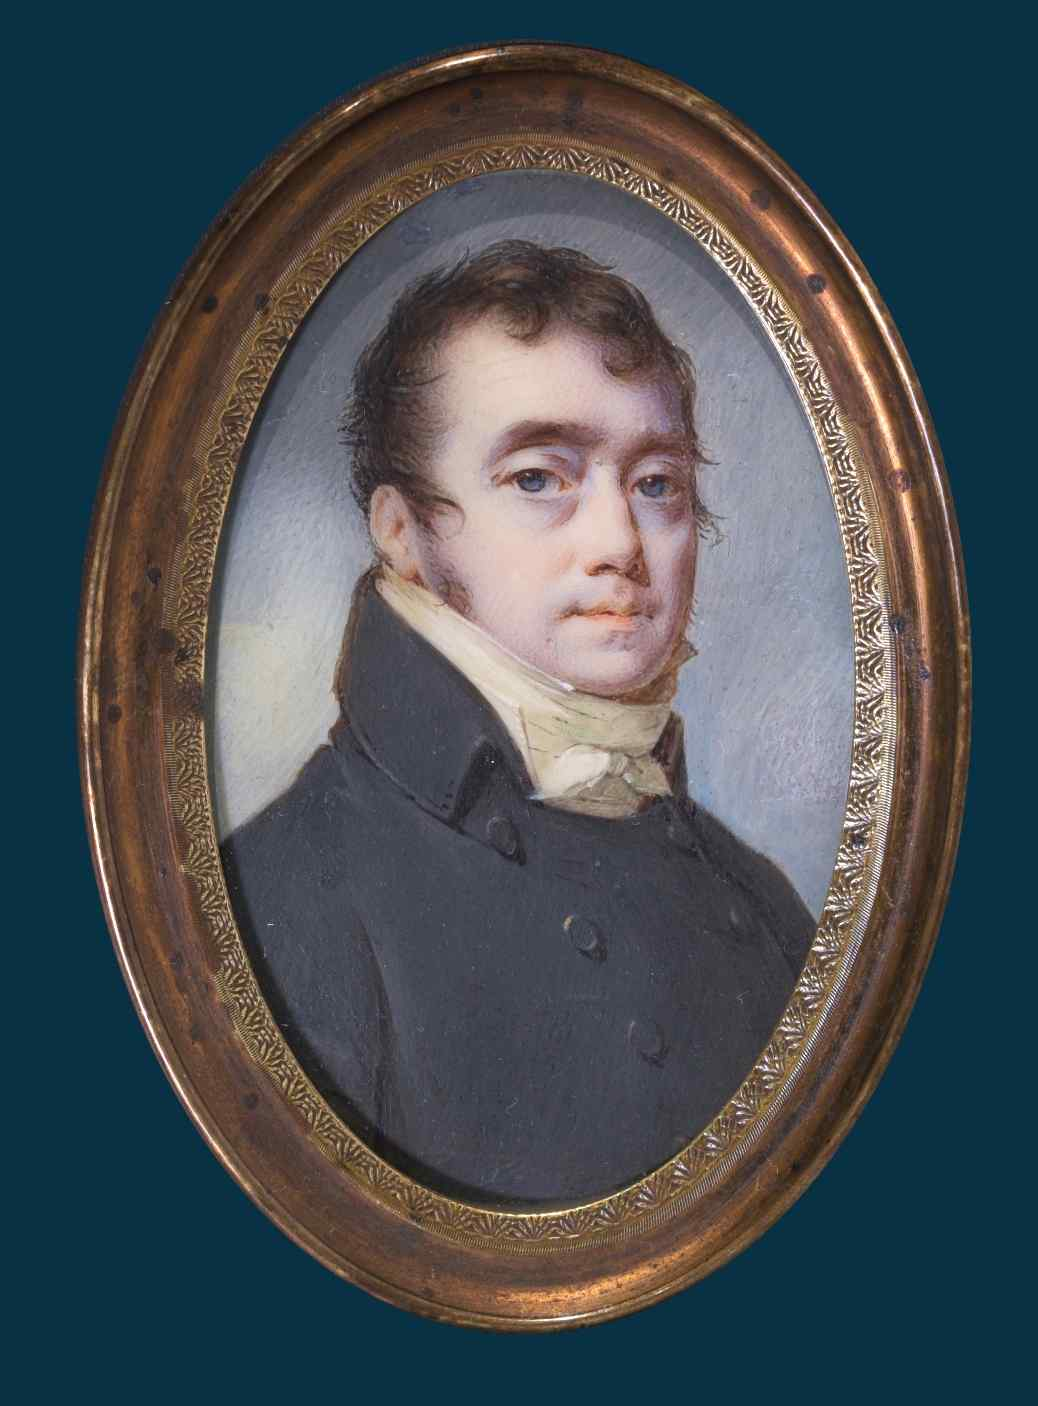 French School, Portrait of a Gentleman, 1800-1820